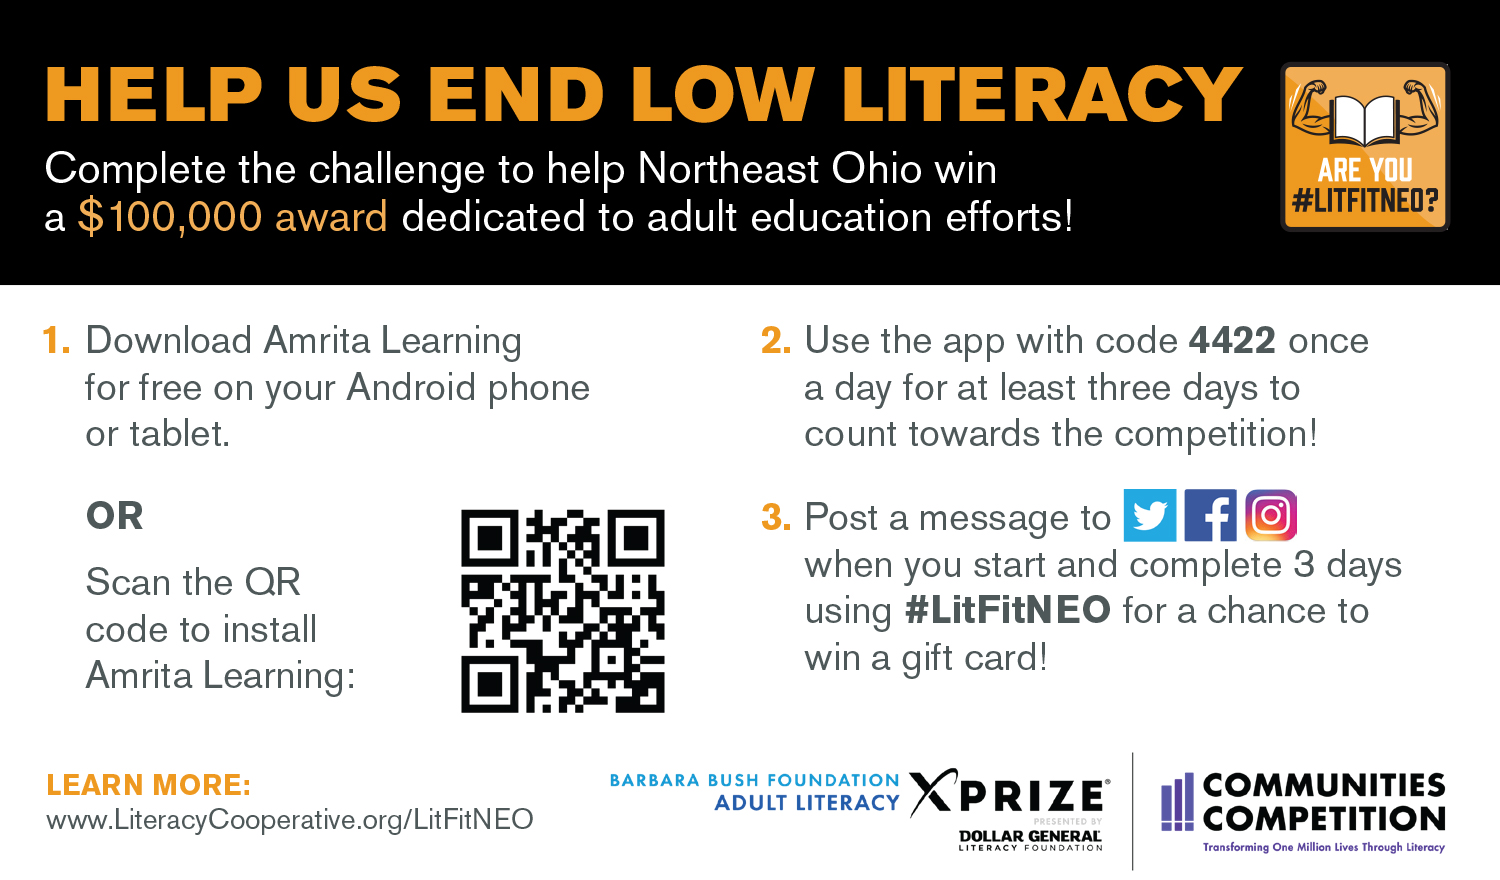 Are You LitFitNEO? - Help our community qualify for a $100,000 award through @XPRIZE that will be used to boost literacy services! Simply download the free Amrita Learning app on your Android phone and test your knowledge for three days. Learn more at http://www.literacycooperative.org/litfitneo/.